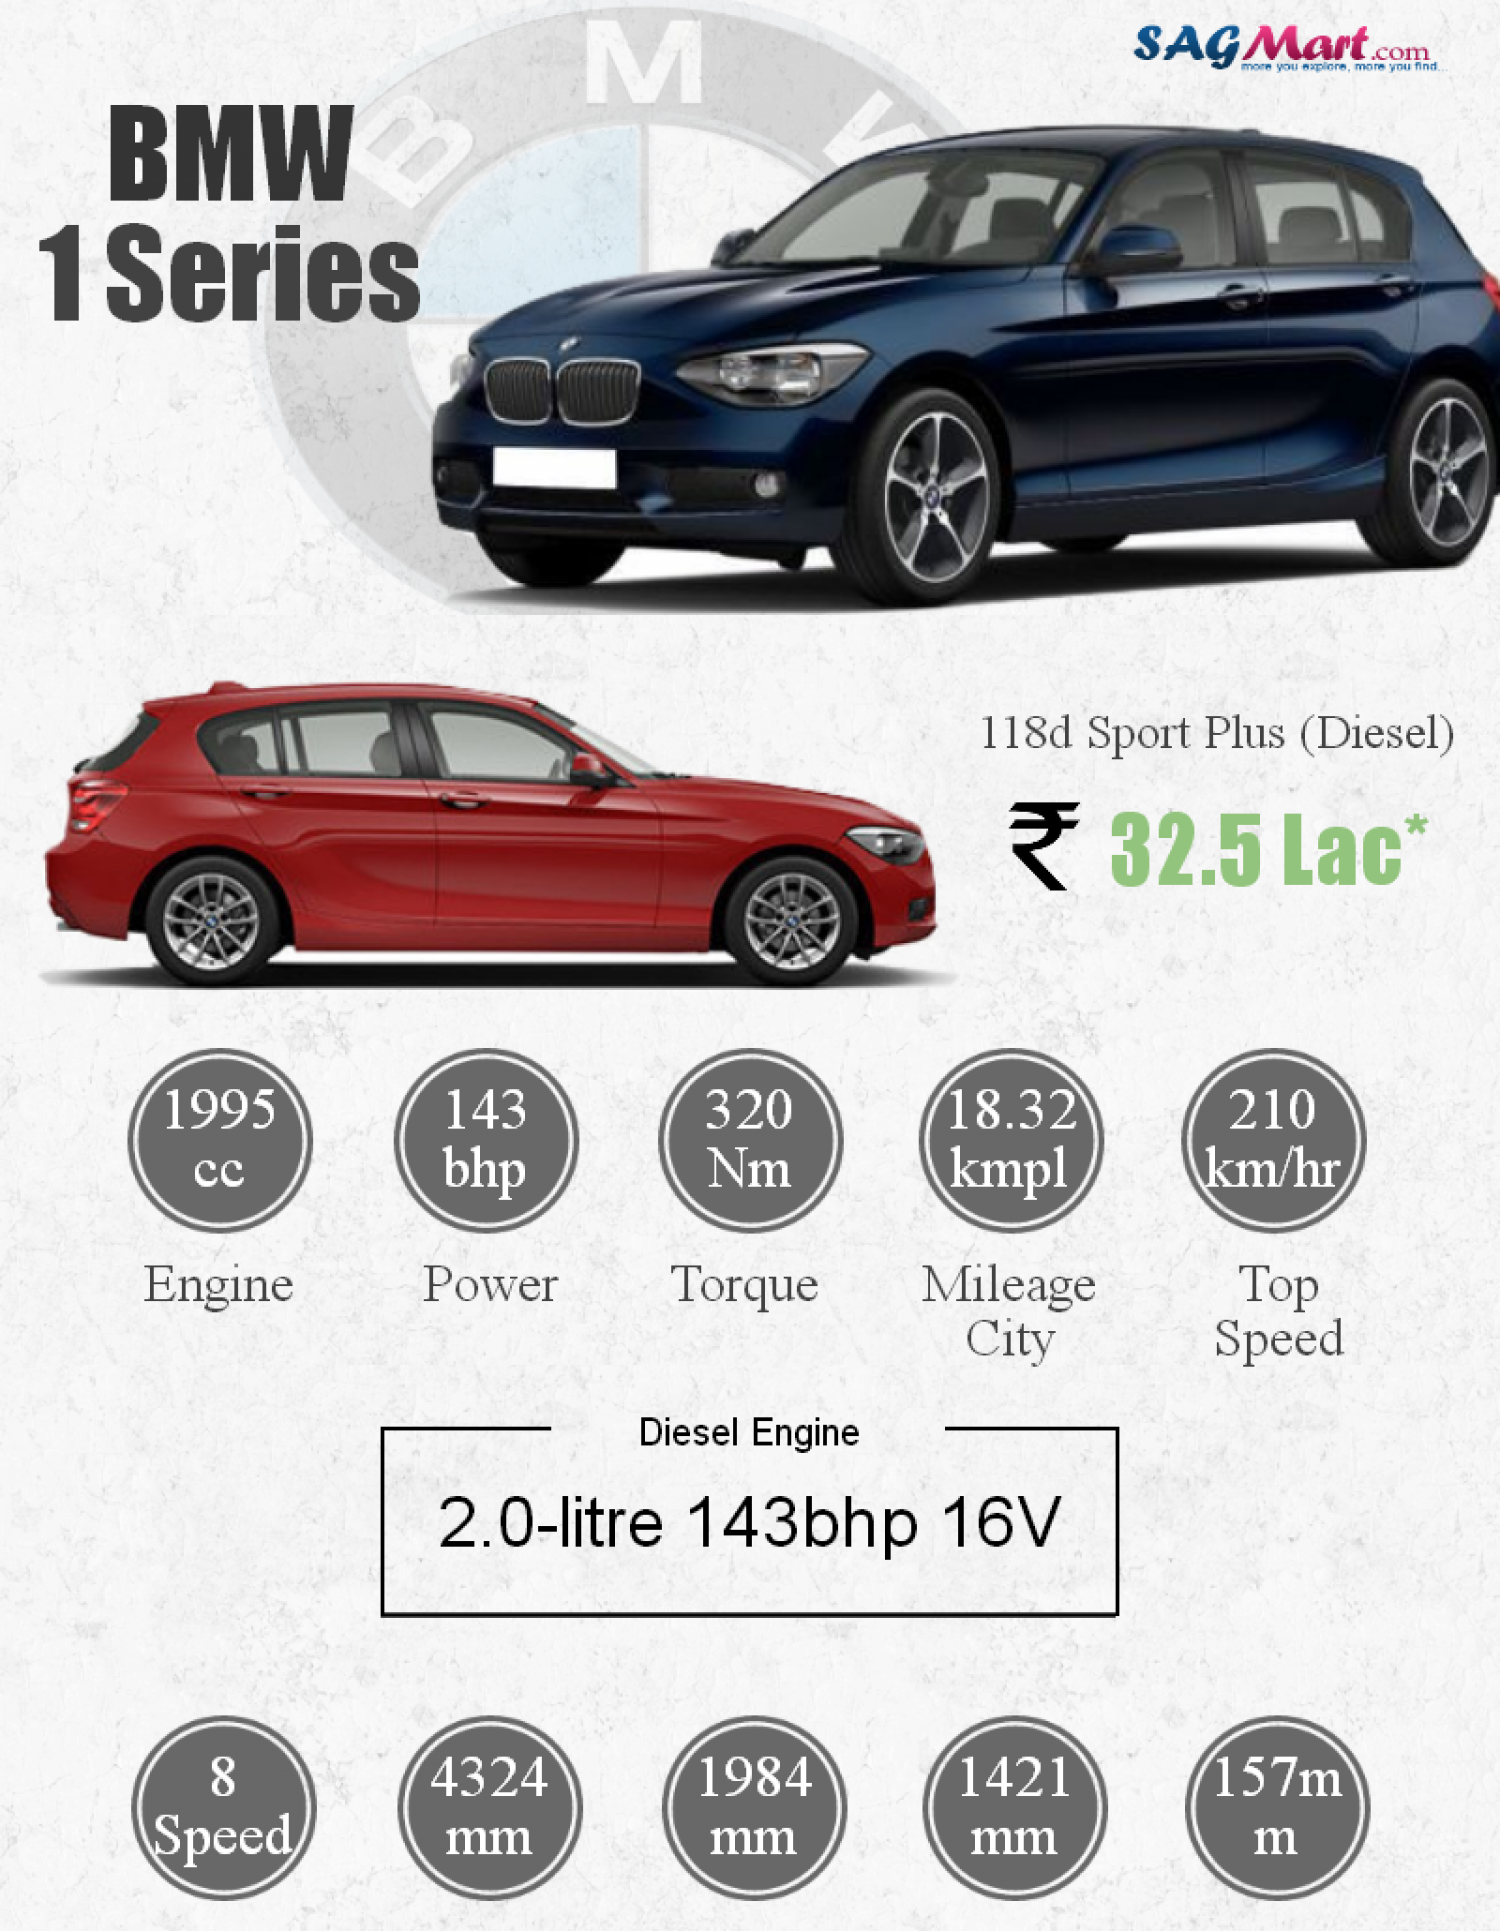 New BMW 1 Series Coming To India Infographic